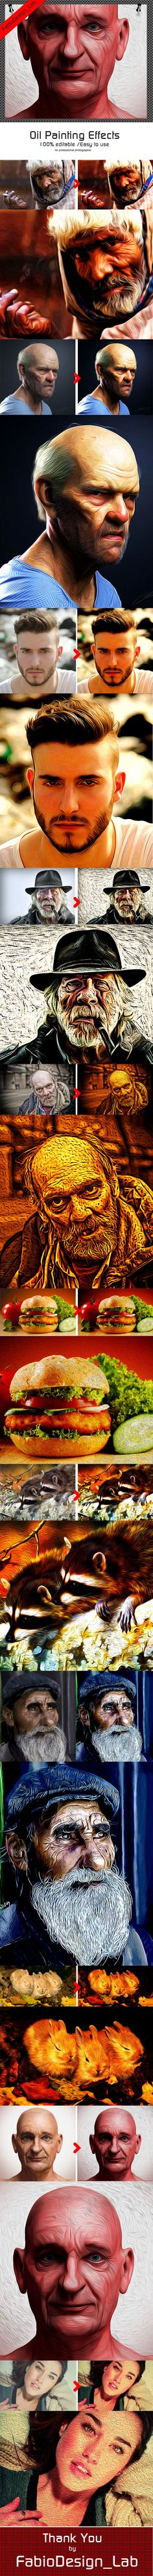 Oil Painting Effects | GraphicRiver http://graphicriver.net/item/oil-painting-effects/10075073?WT.oss_phrase=&WT.oss_rank=12&WT.z_author=FabioDesign_Lab&WT.ac=search_thumb